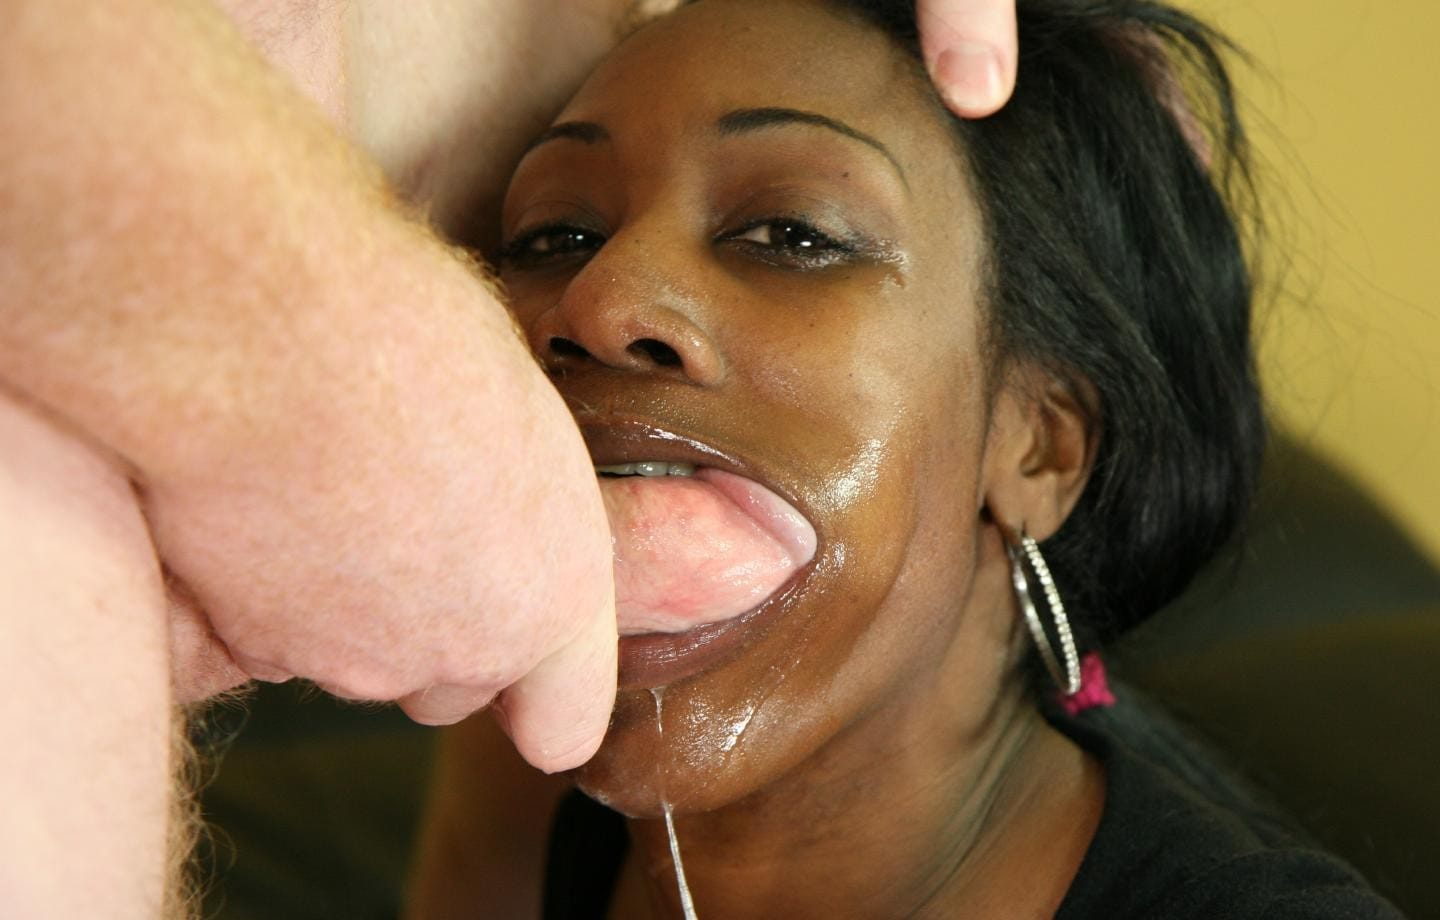 ghetto-gaggers-beauty-dior-gives-deepthroat